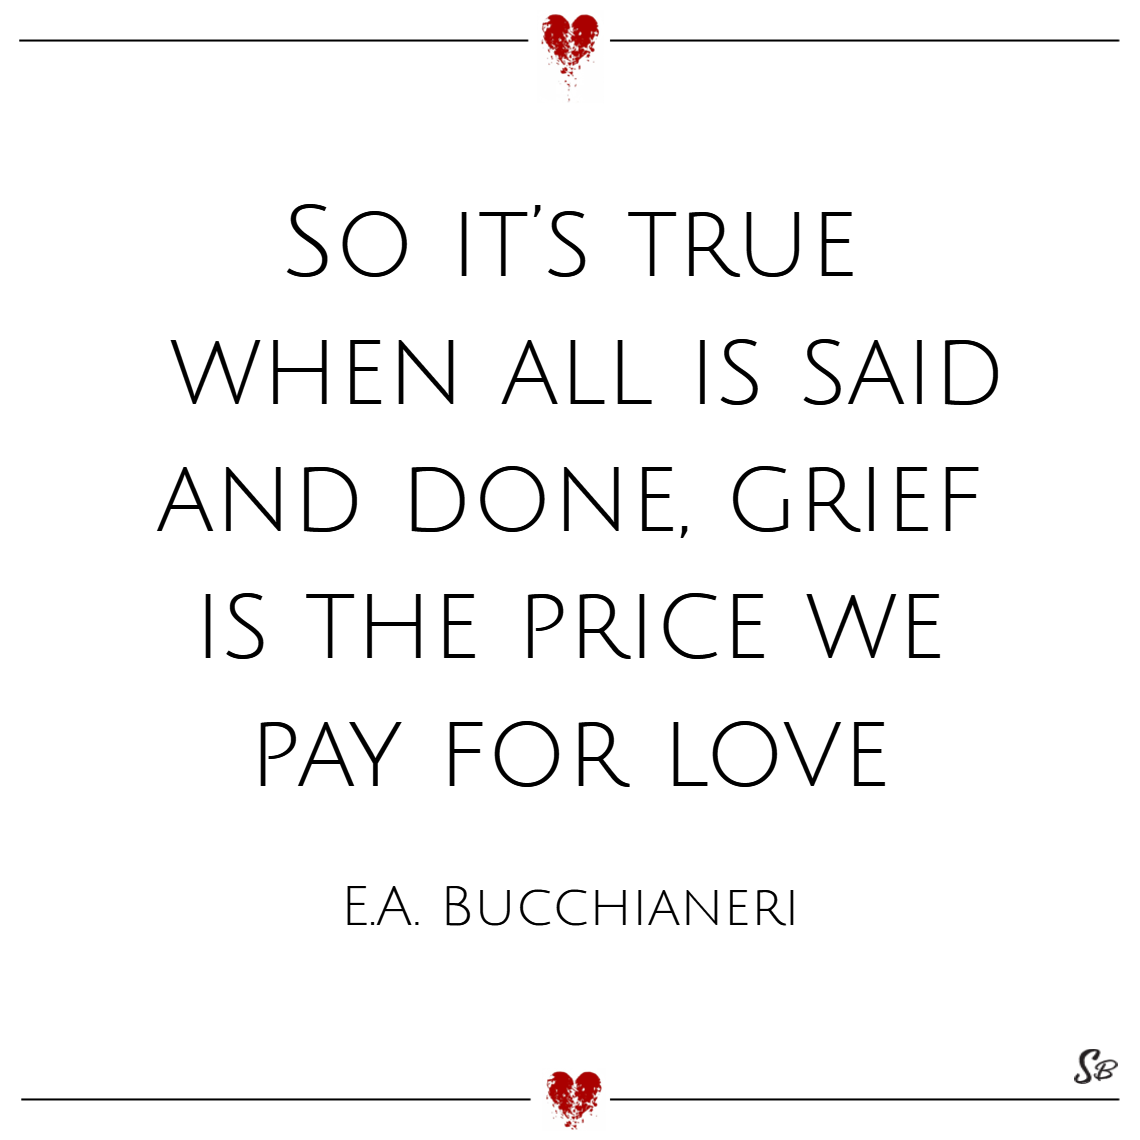 So it's true, when all is said and done, grief is the price we pay for love. – e.a. bucchianeri